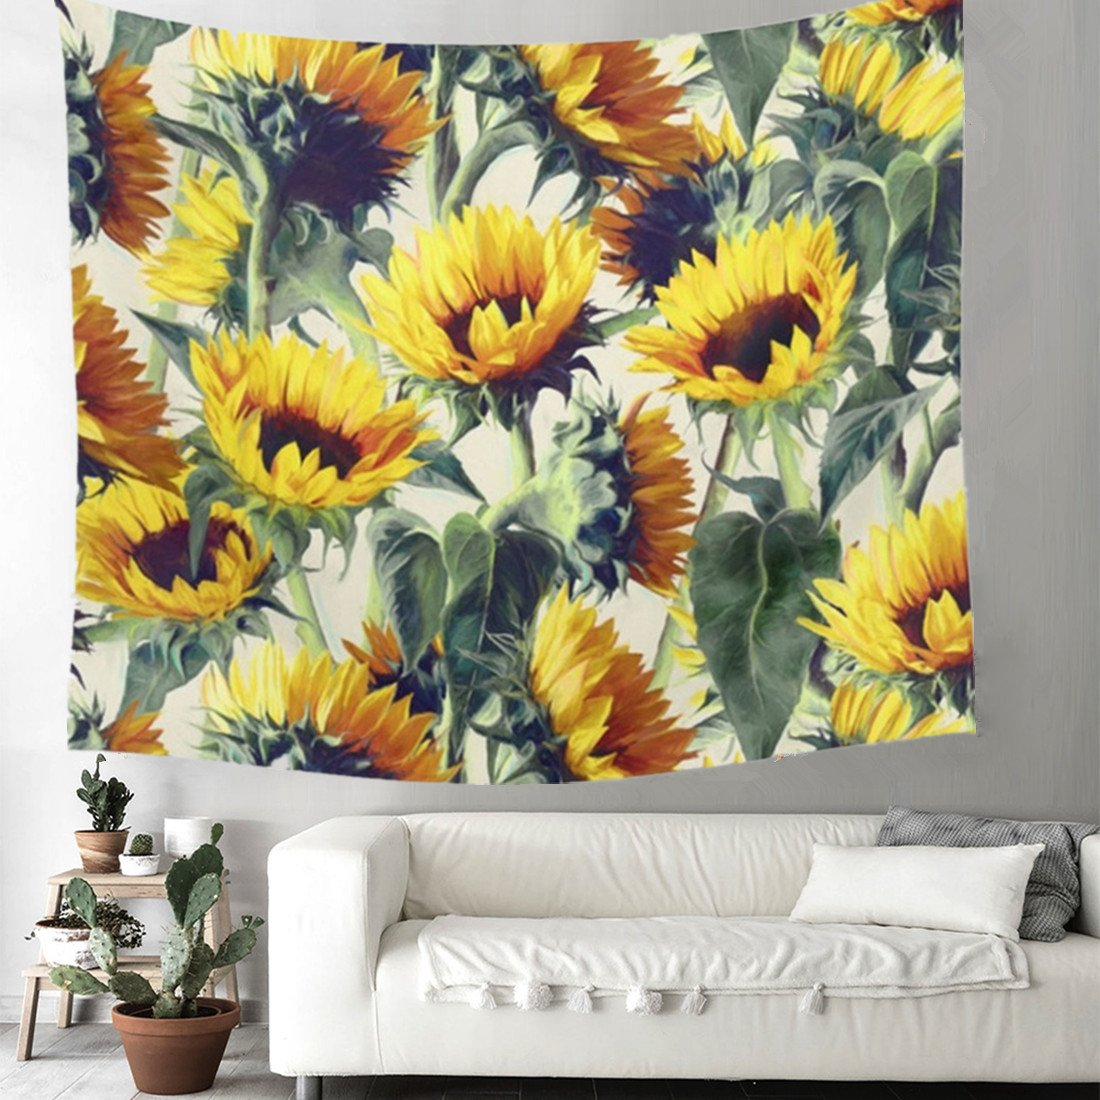 Grace store Boho Wall Tapestry Yellow Sunflower Tapestry Wall hanging Mandala Tapestry for Bedroom, W59 x L51 by Grace store